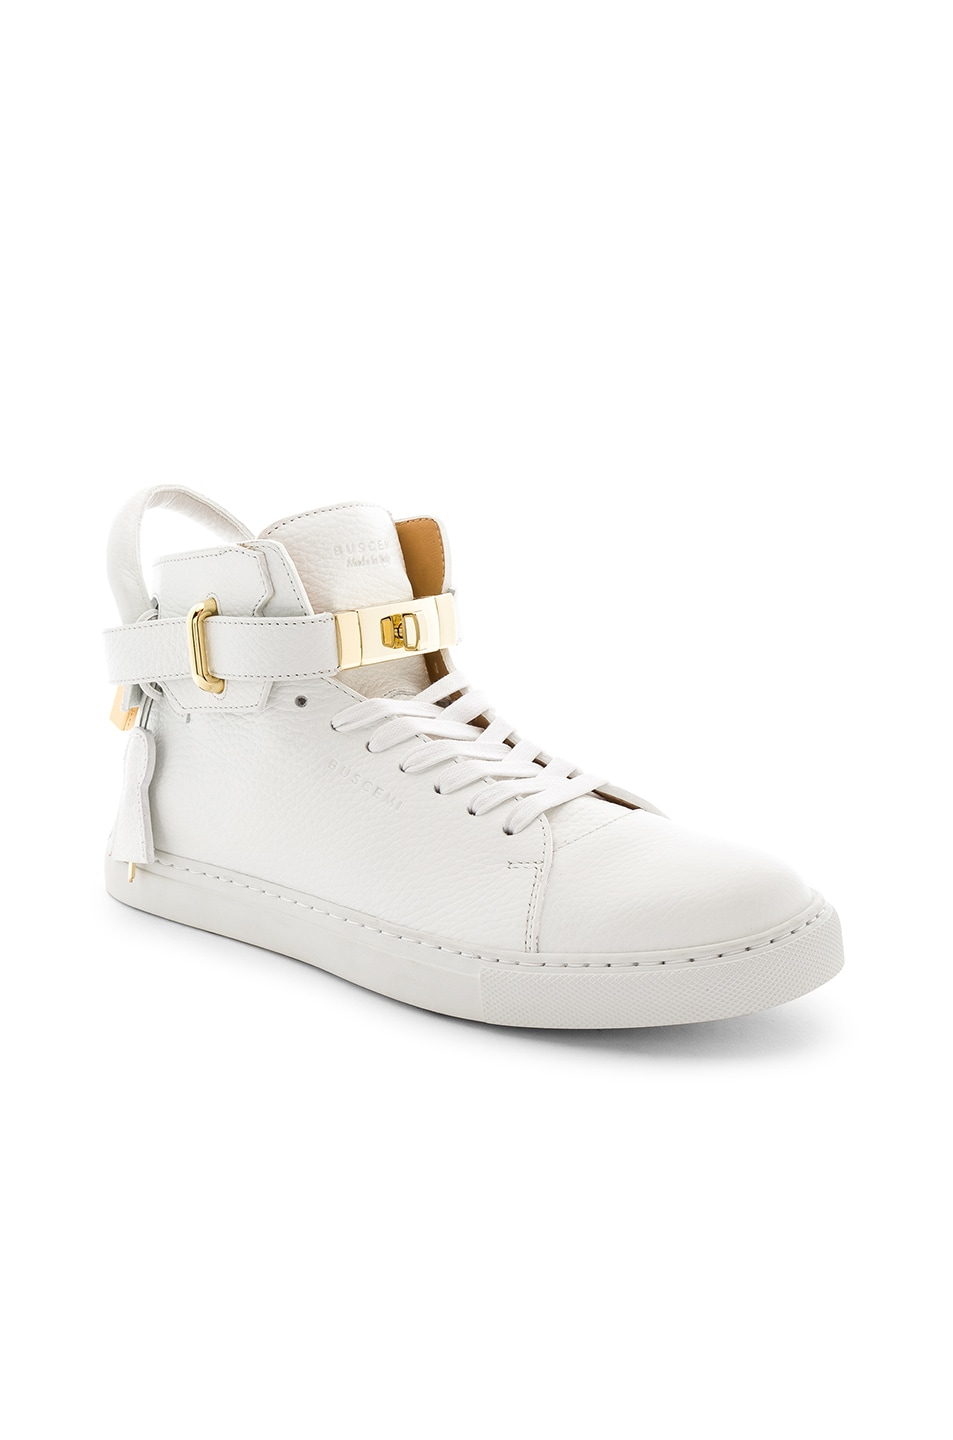 BUSCEMI 100 MM High Top Leather Sneakers in . s25envt